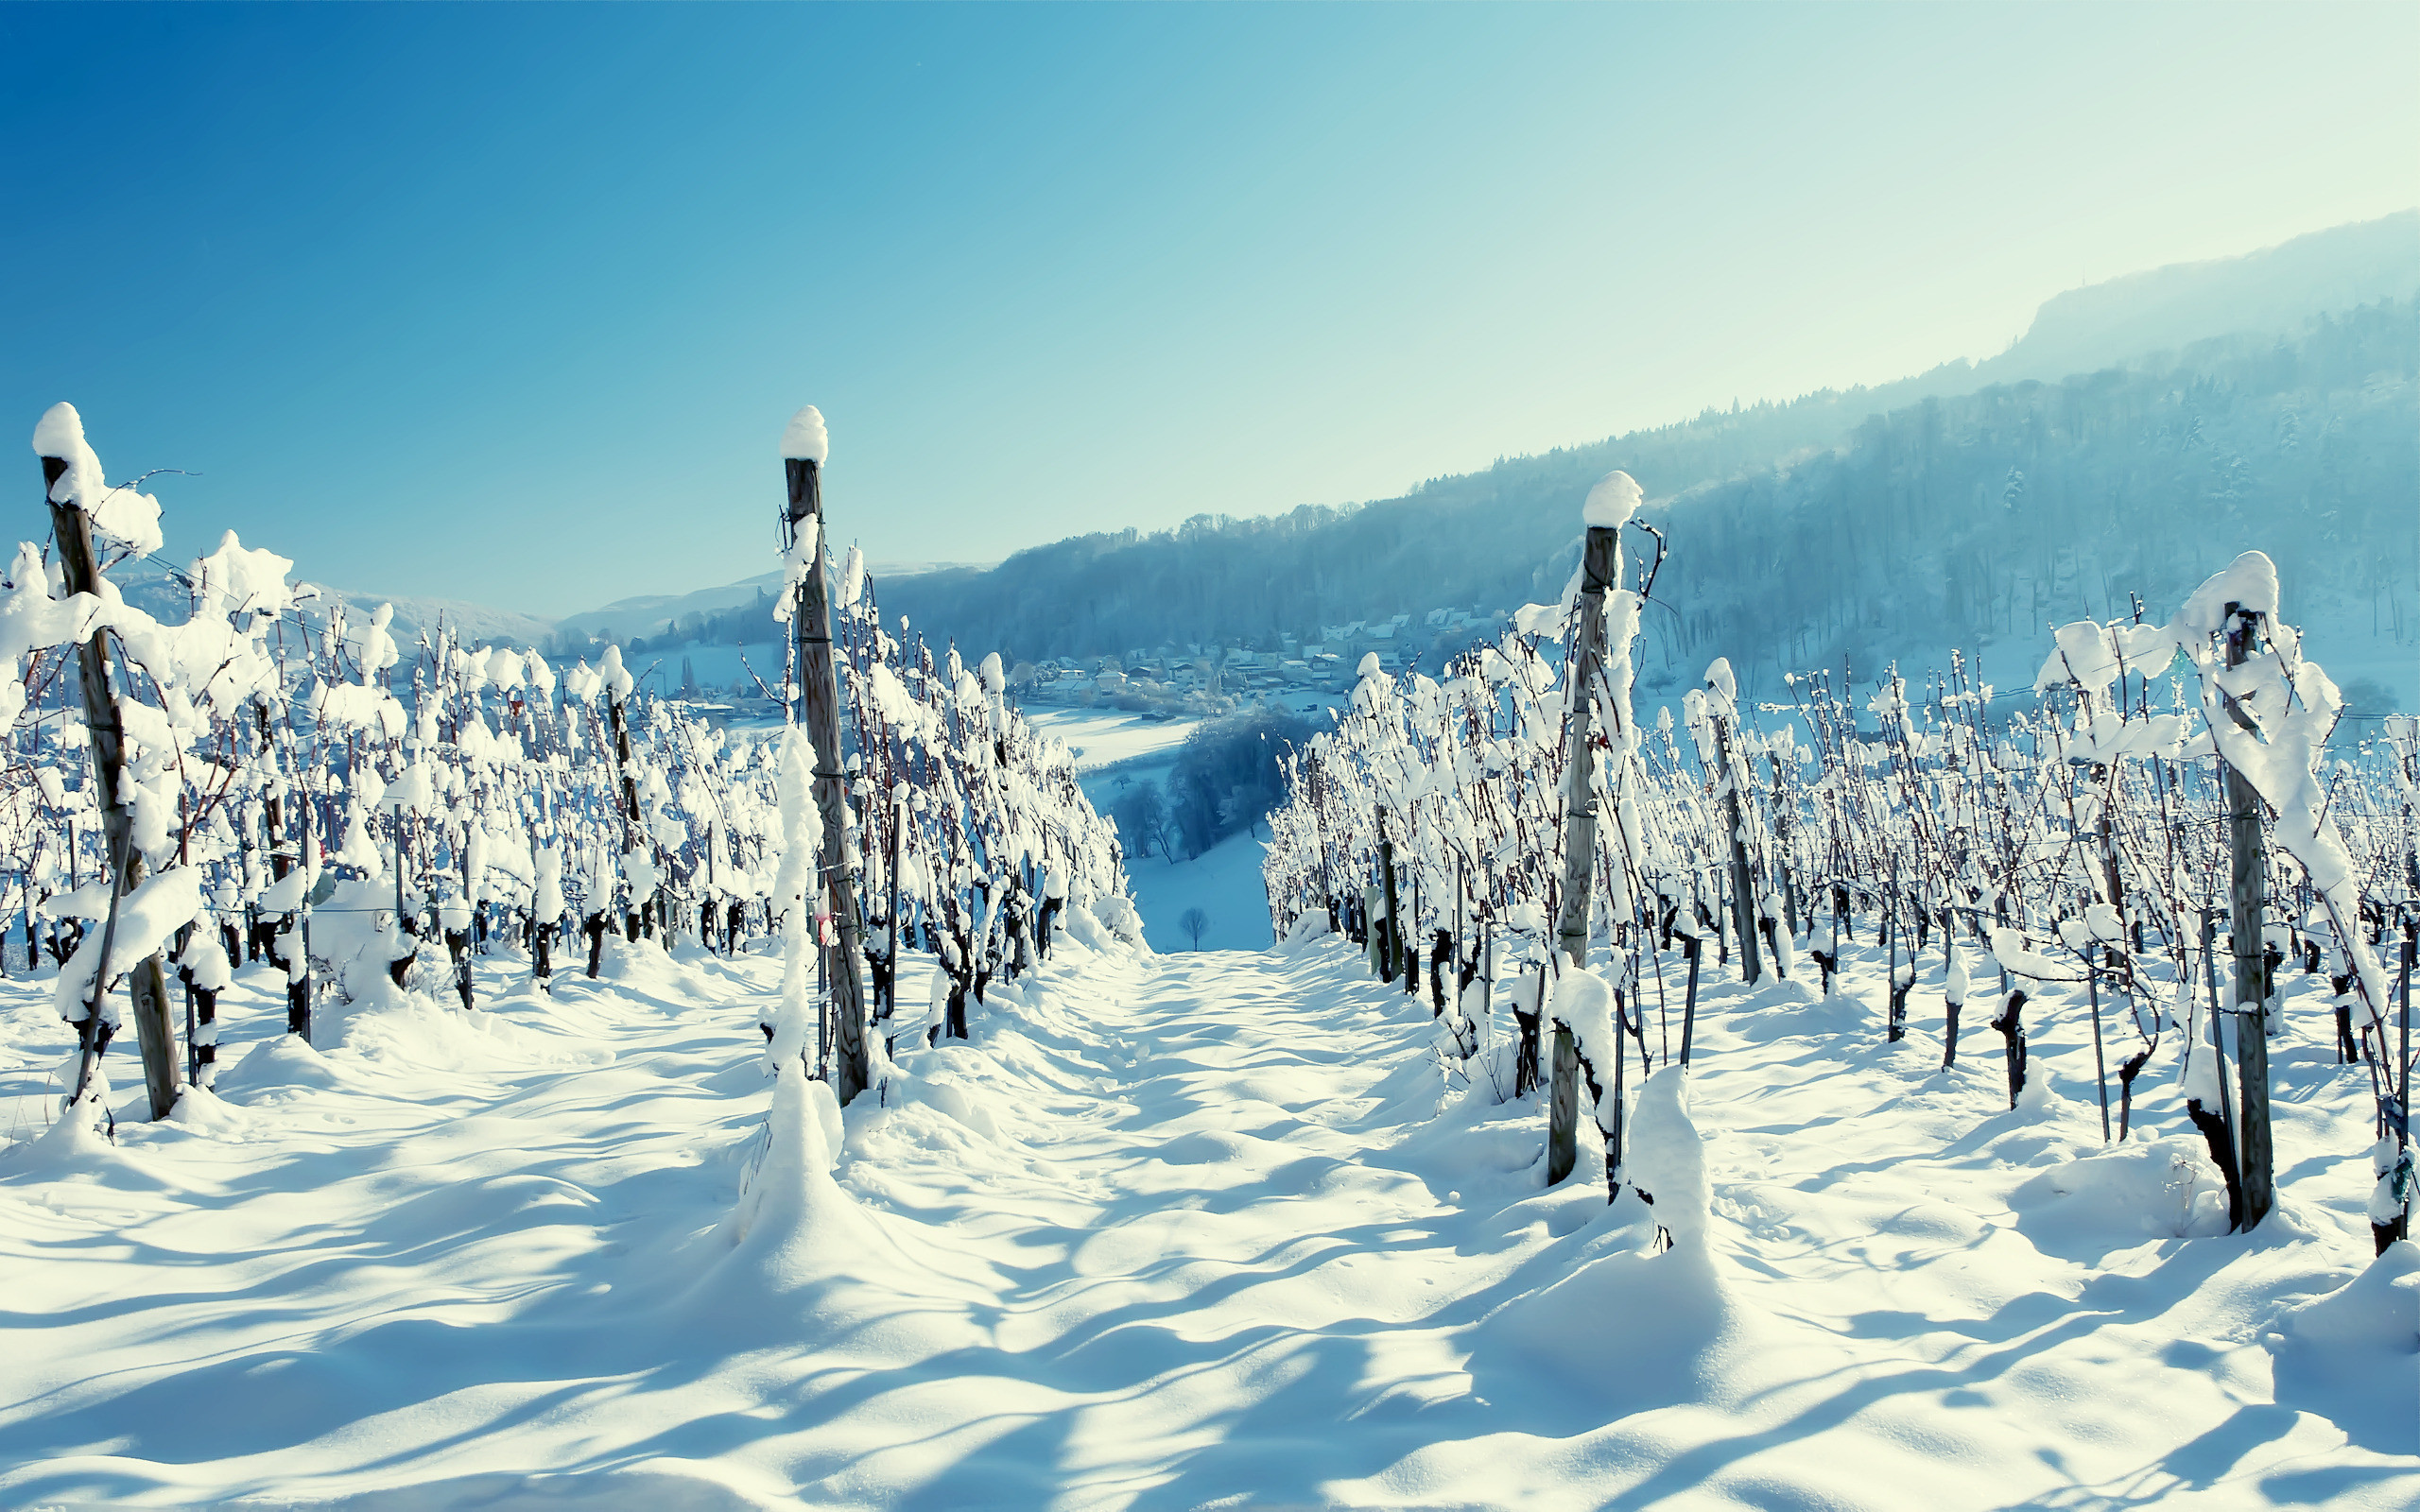 2560x1600 Snow in the Vineyard Wallpaper